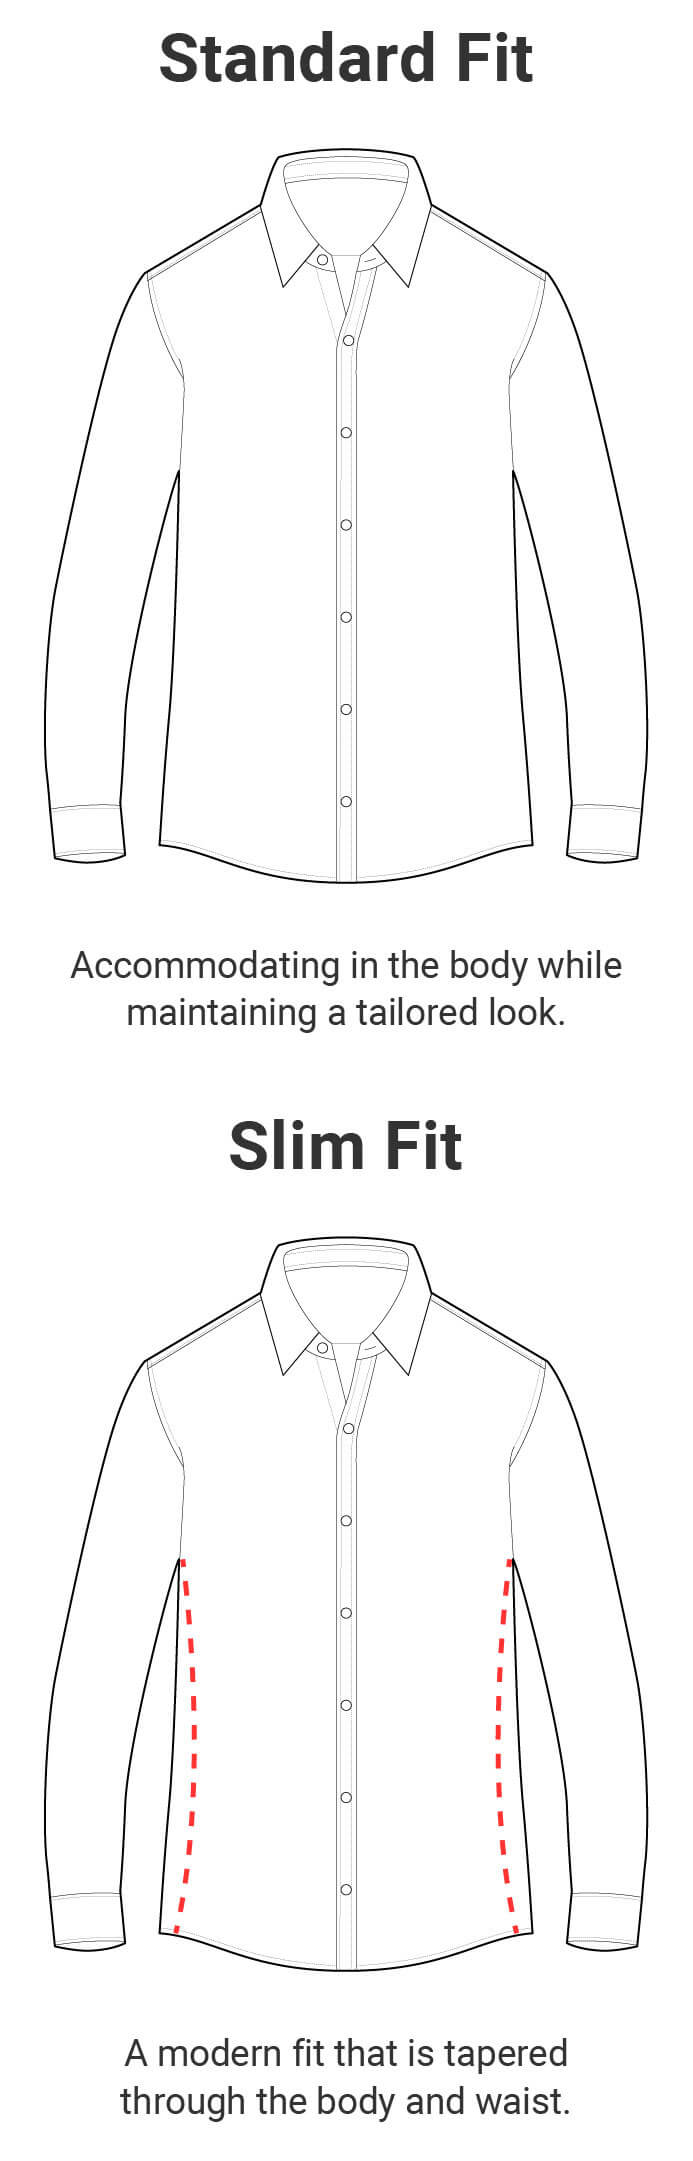 Slim Fit - A modern fit that is tapered through the body and waist. Standard Fit - Accommodating in the body while maintaining a tailored look.